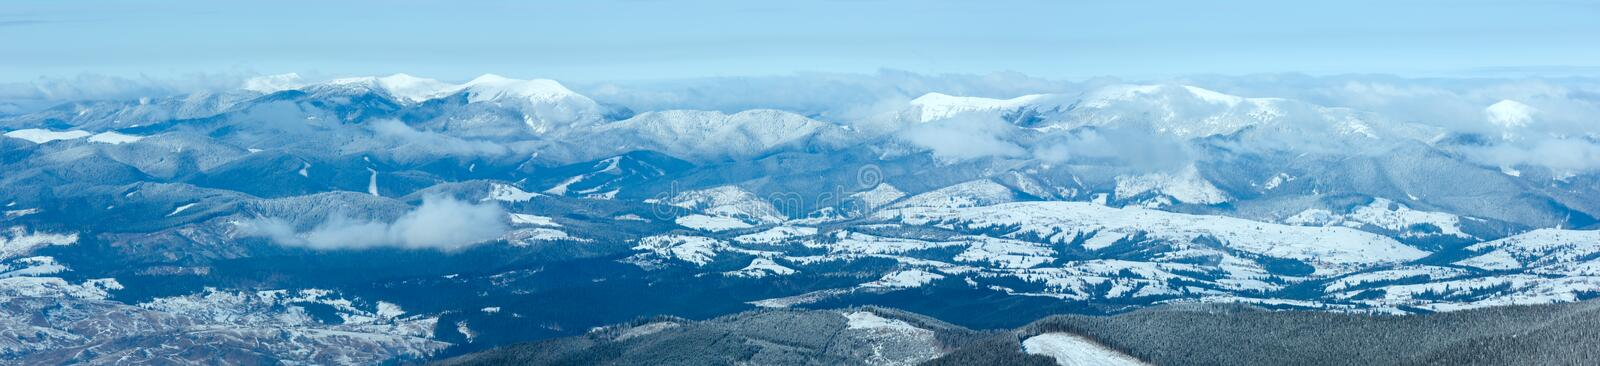 Morning winter mountain panorama. royalty free stock photos